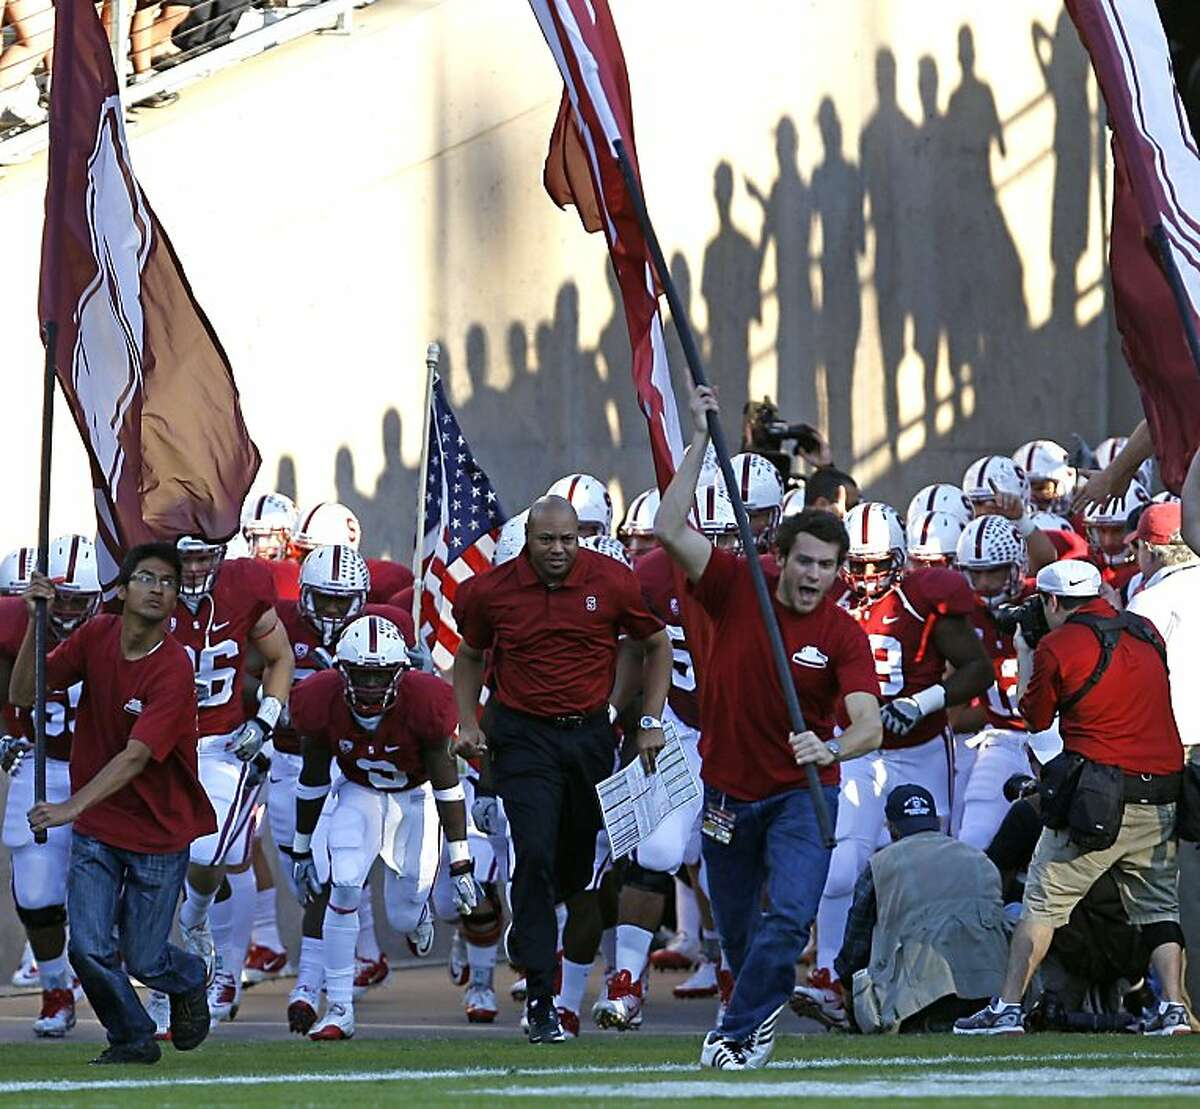 Stanford Cardinal head coach David Shaw leads his team onto the field to face the Washington Huskies at Stanford Stadium on October 22, 2011 in Stanford, California.